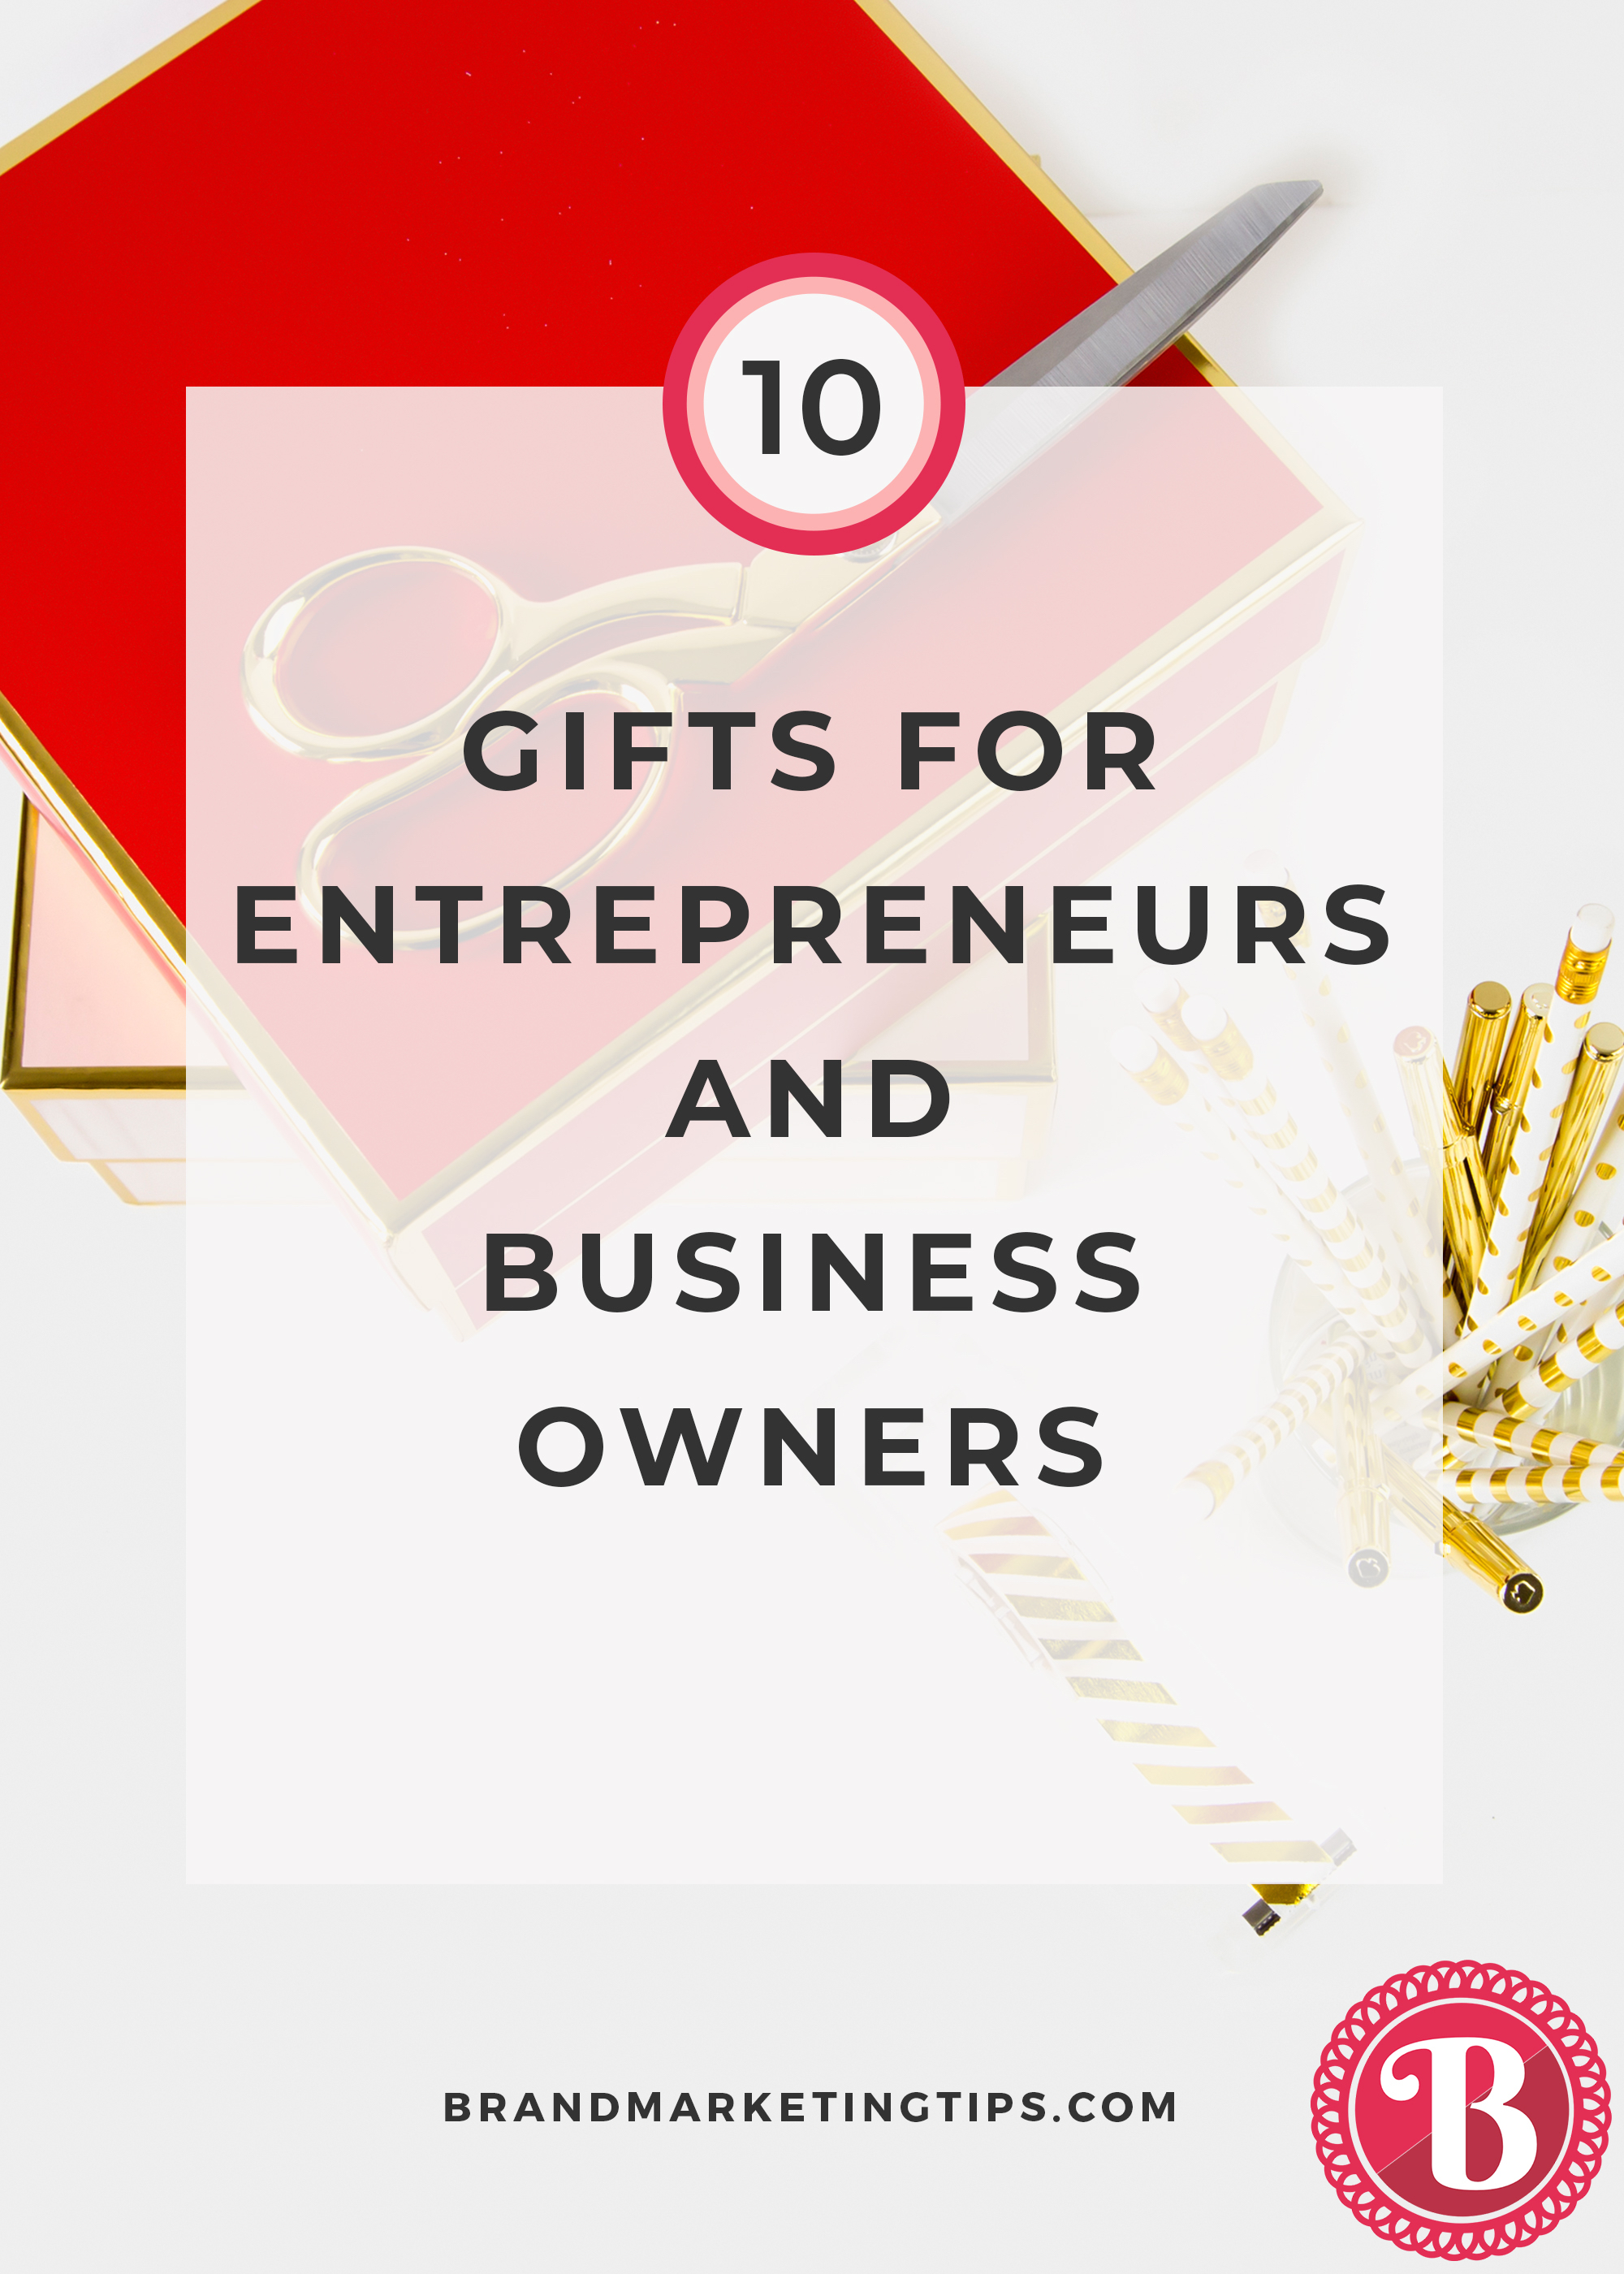 Top 10 Gifts for Entrepreneurs and Business Owners